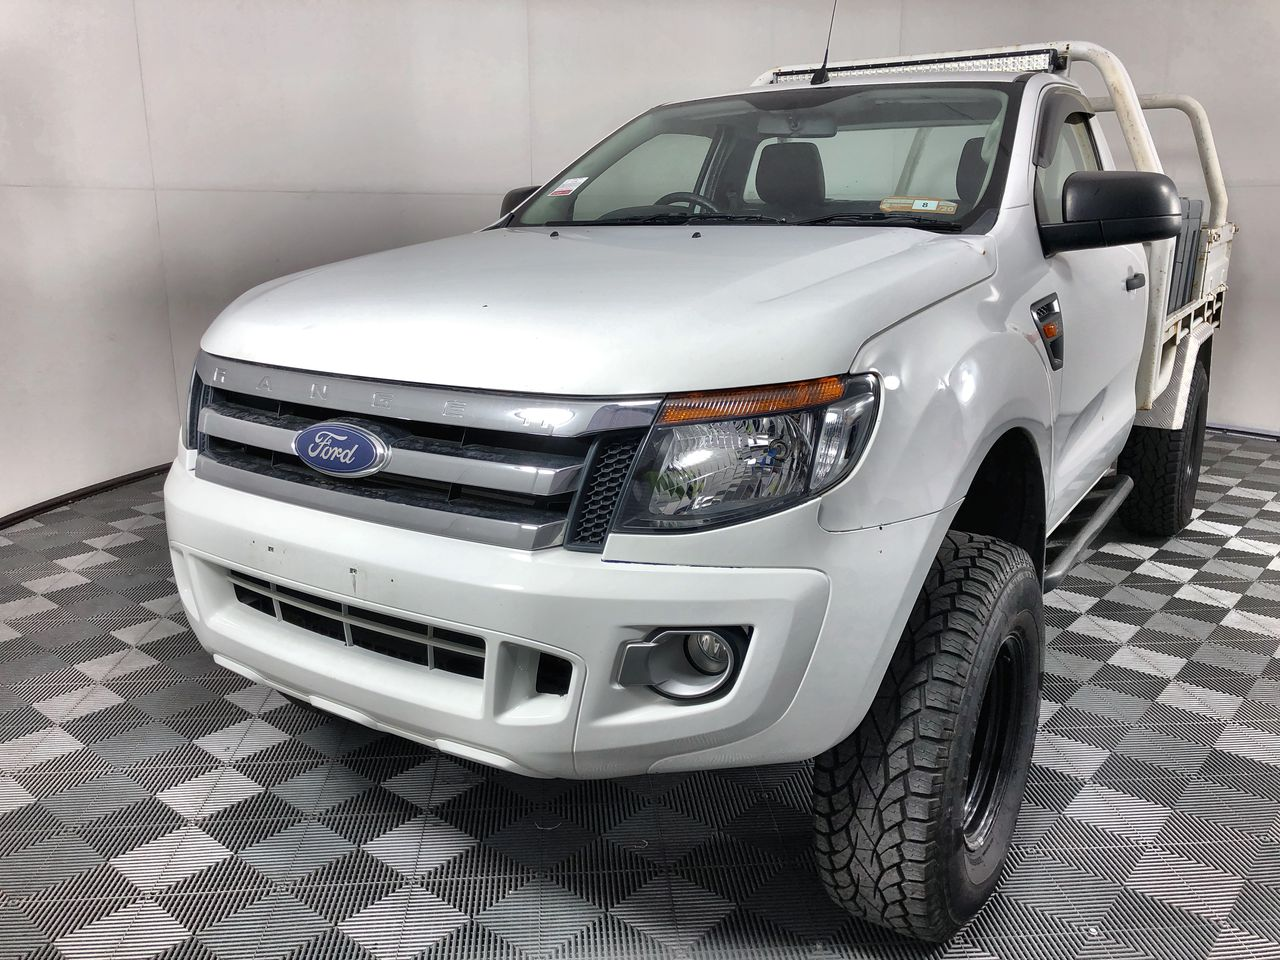 2012 Ford Ranger XL 3.2 (4x4) PX Turbo Diesel Cab Chassis